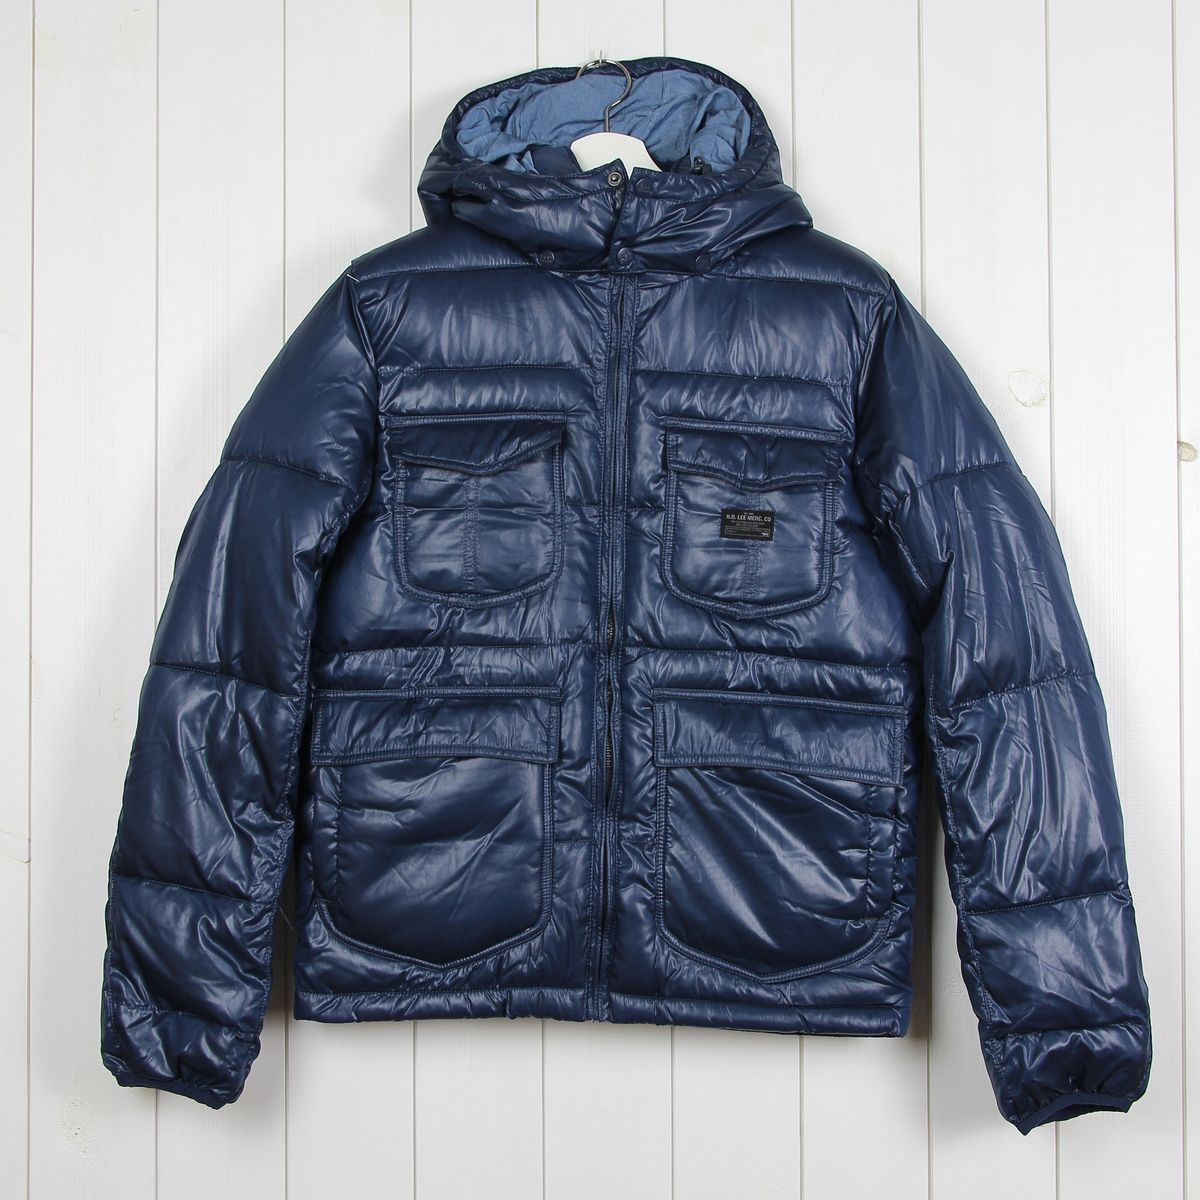 M DC Men/'s Puffer Jacket Navy Blue Size S L XXL Available-Brand New XL